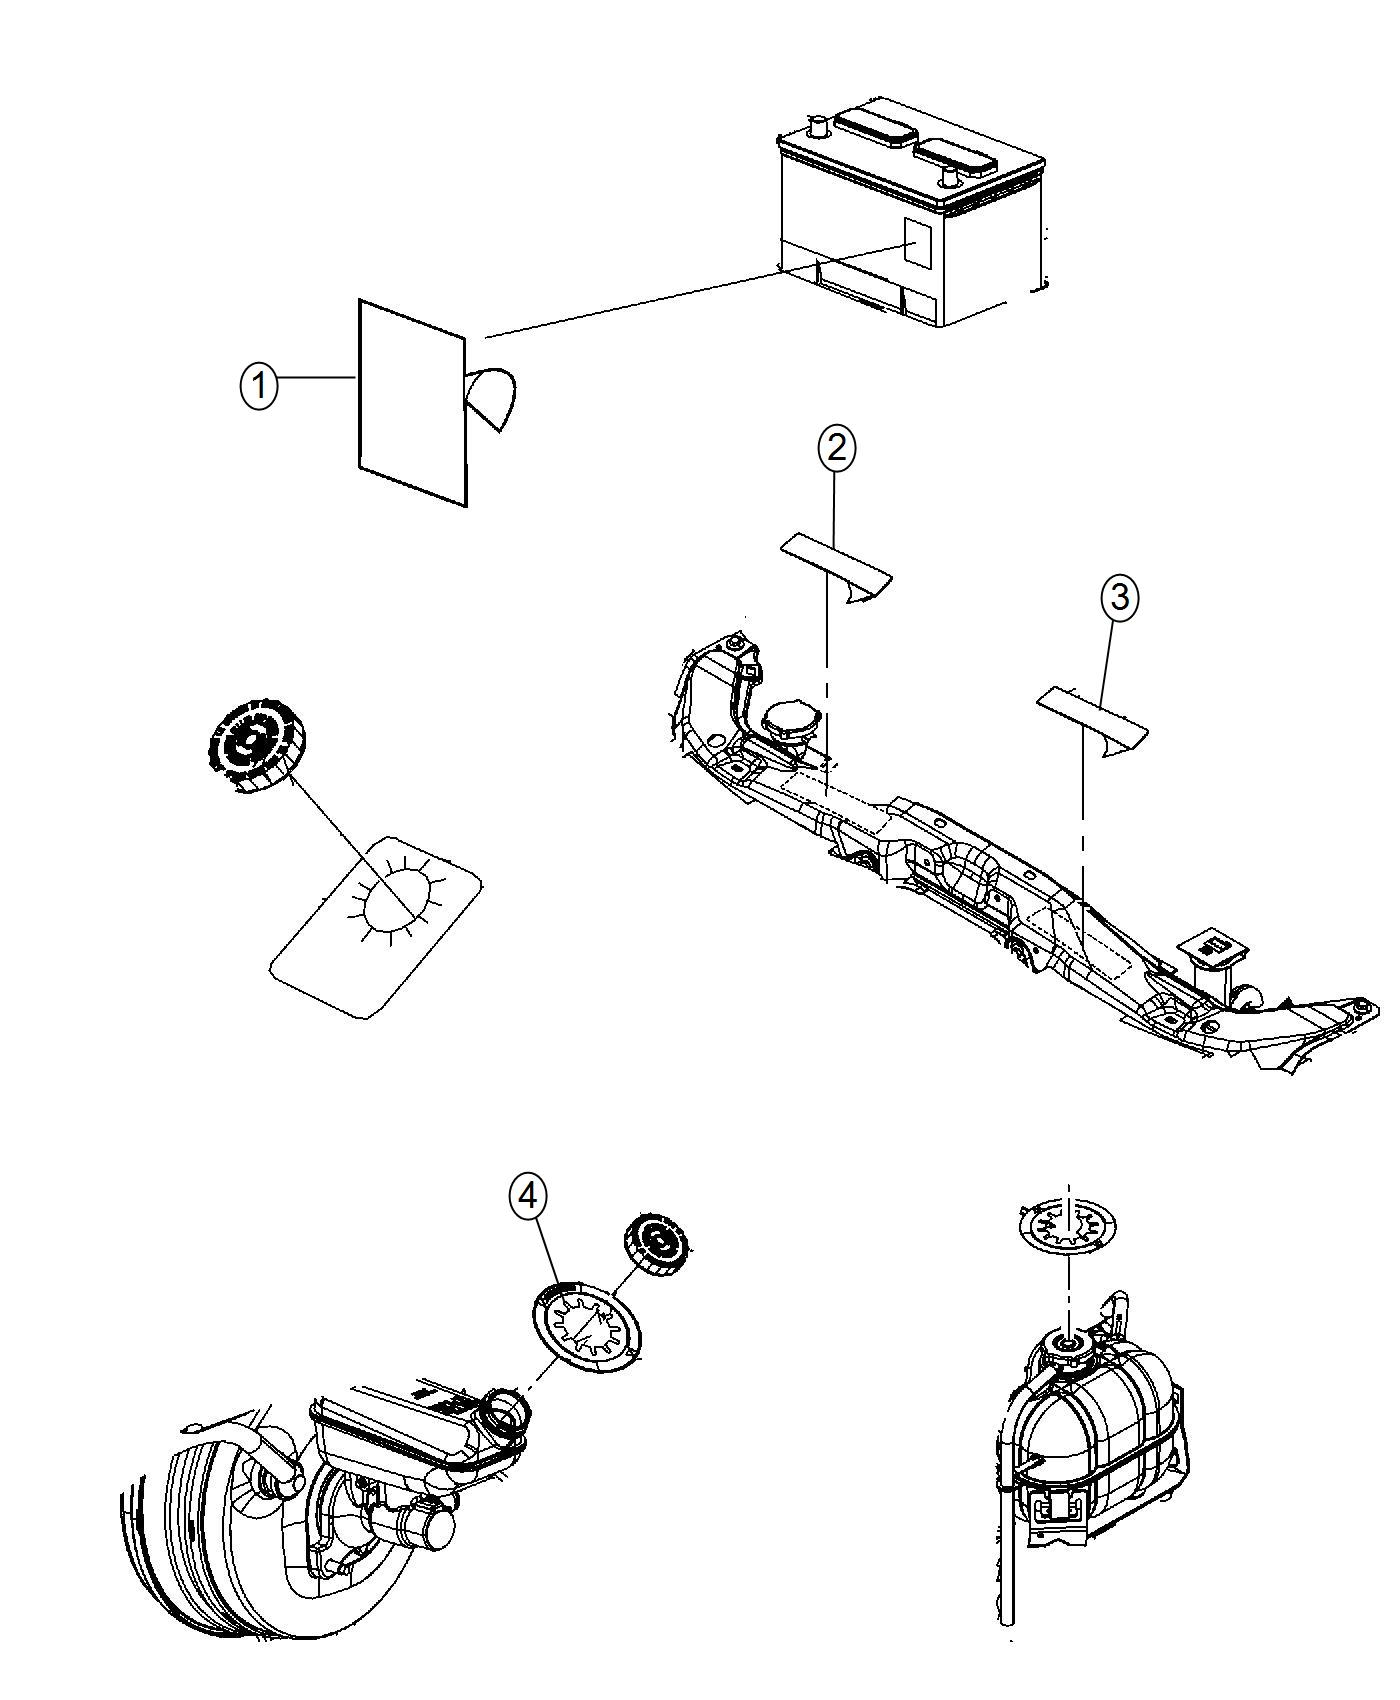 Jeep Cherokee Label Air Conditioning System Engine Duty